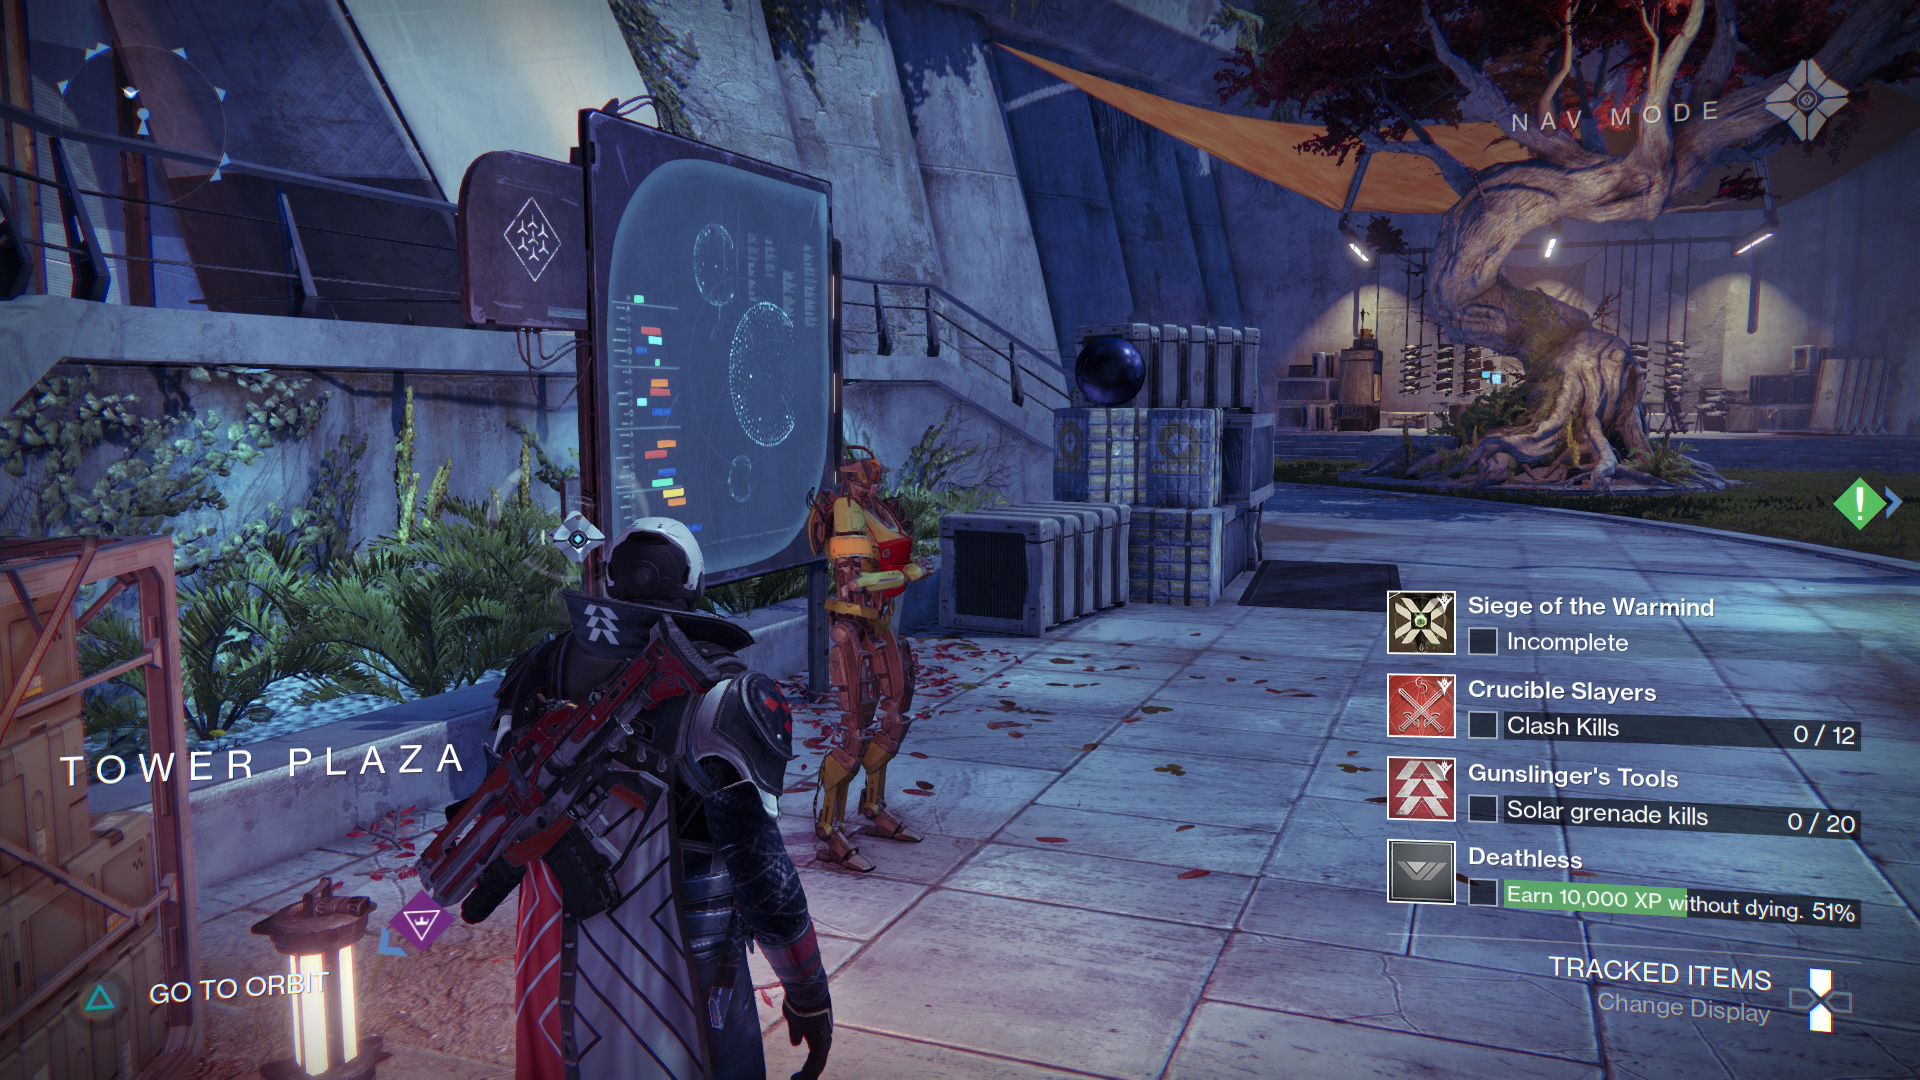 Destiny: The Taken King will greatly improve quests and bounties, and how they're handled